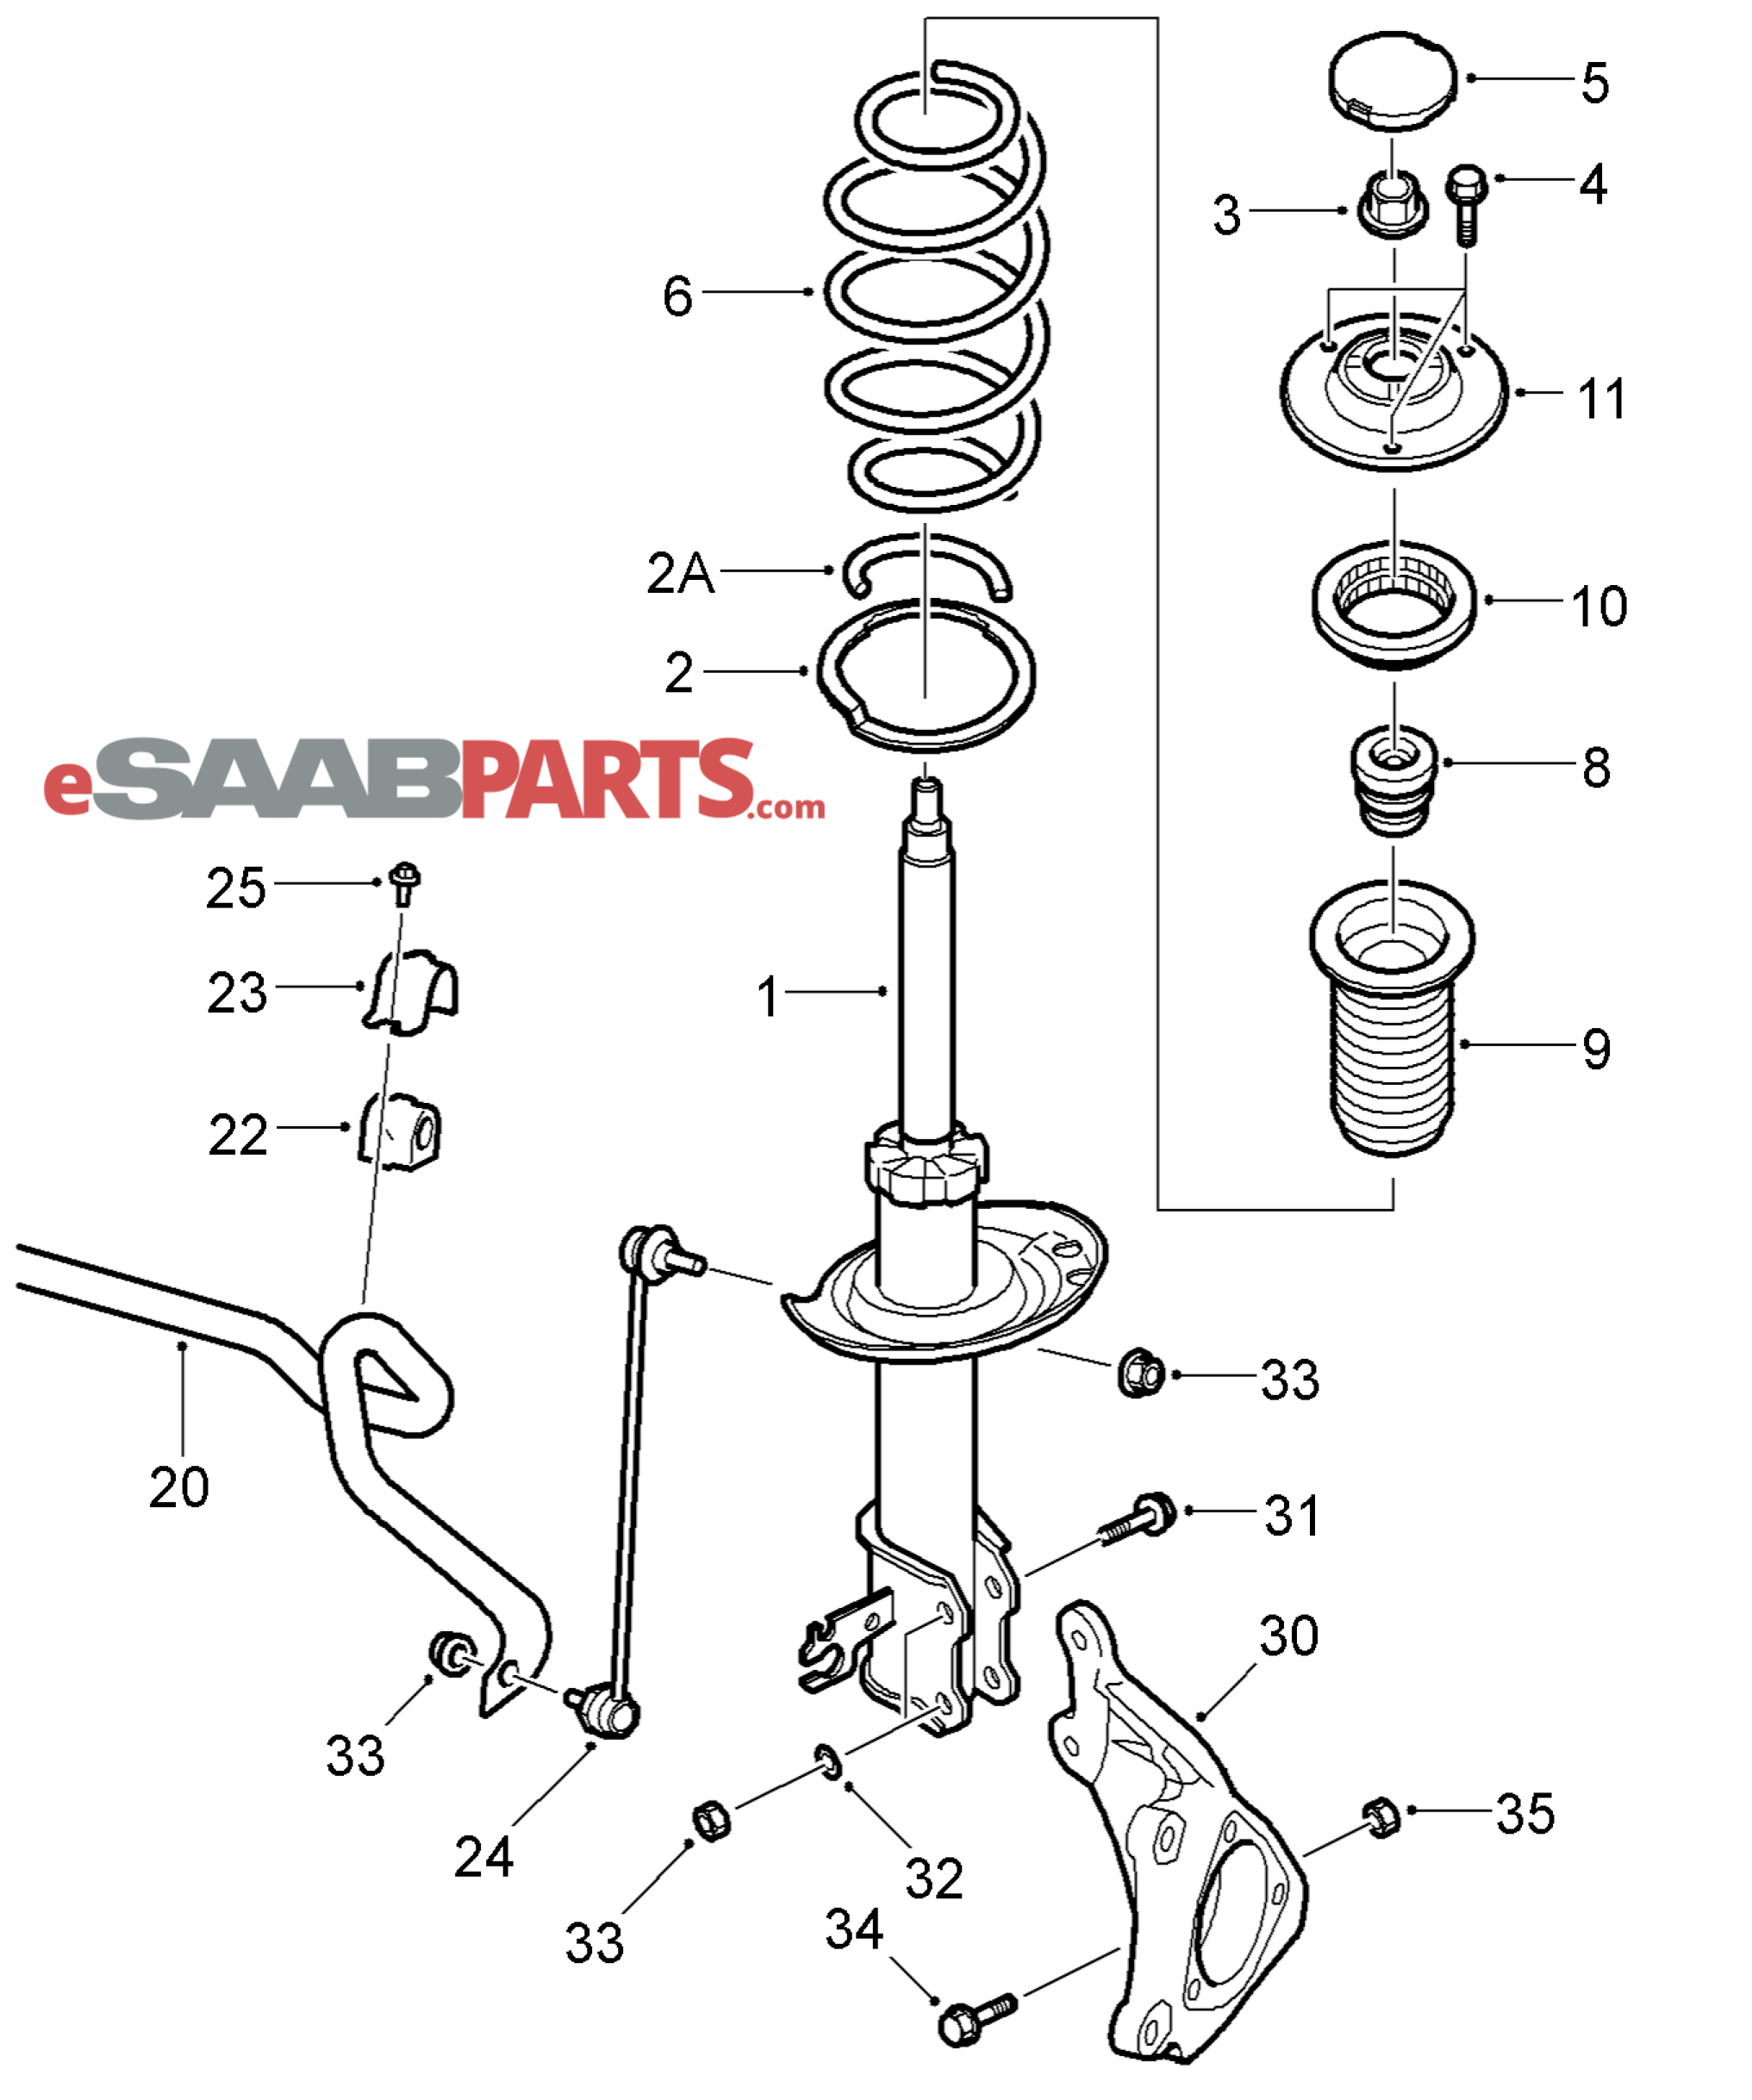 saab oem parts diagram  u2022 wiring diagram for free